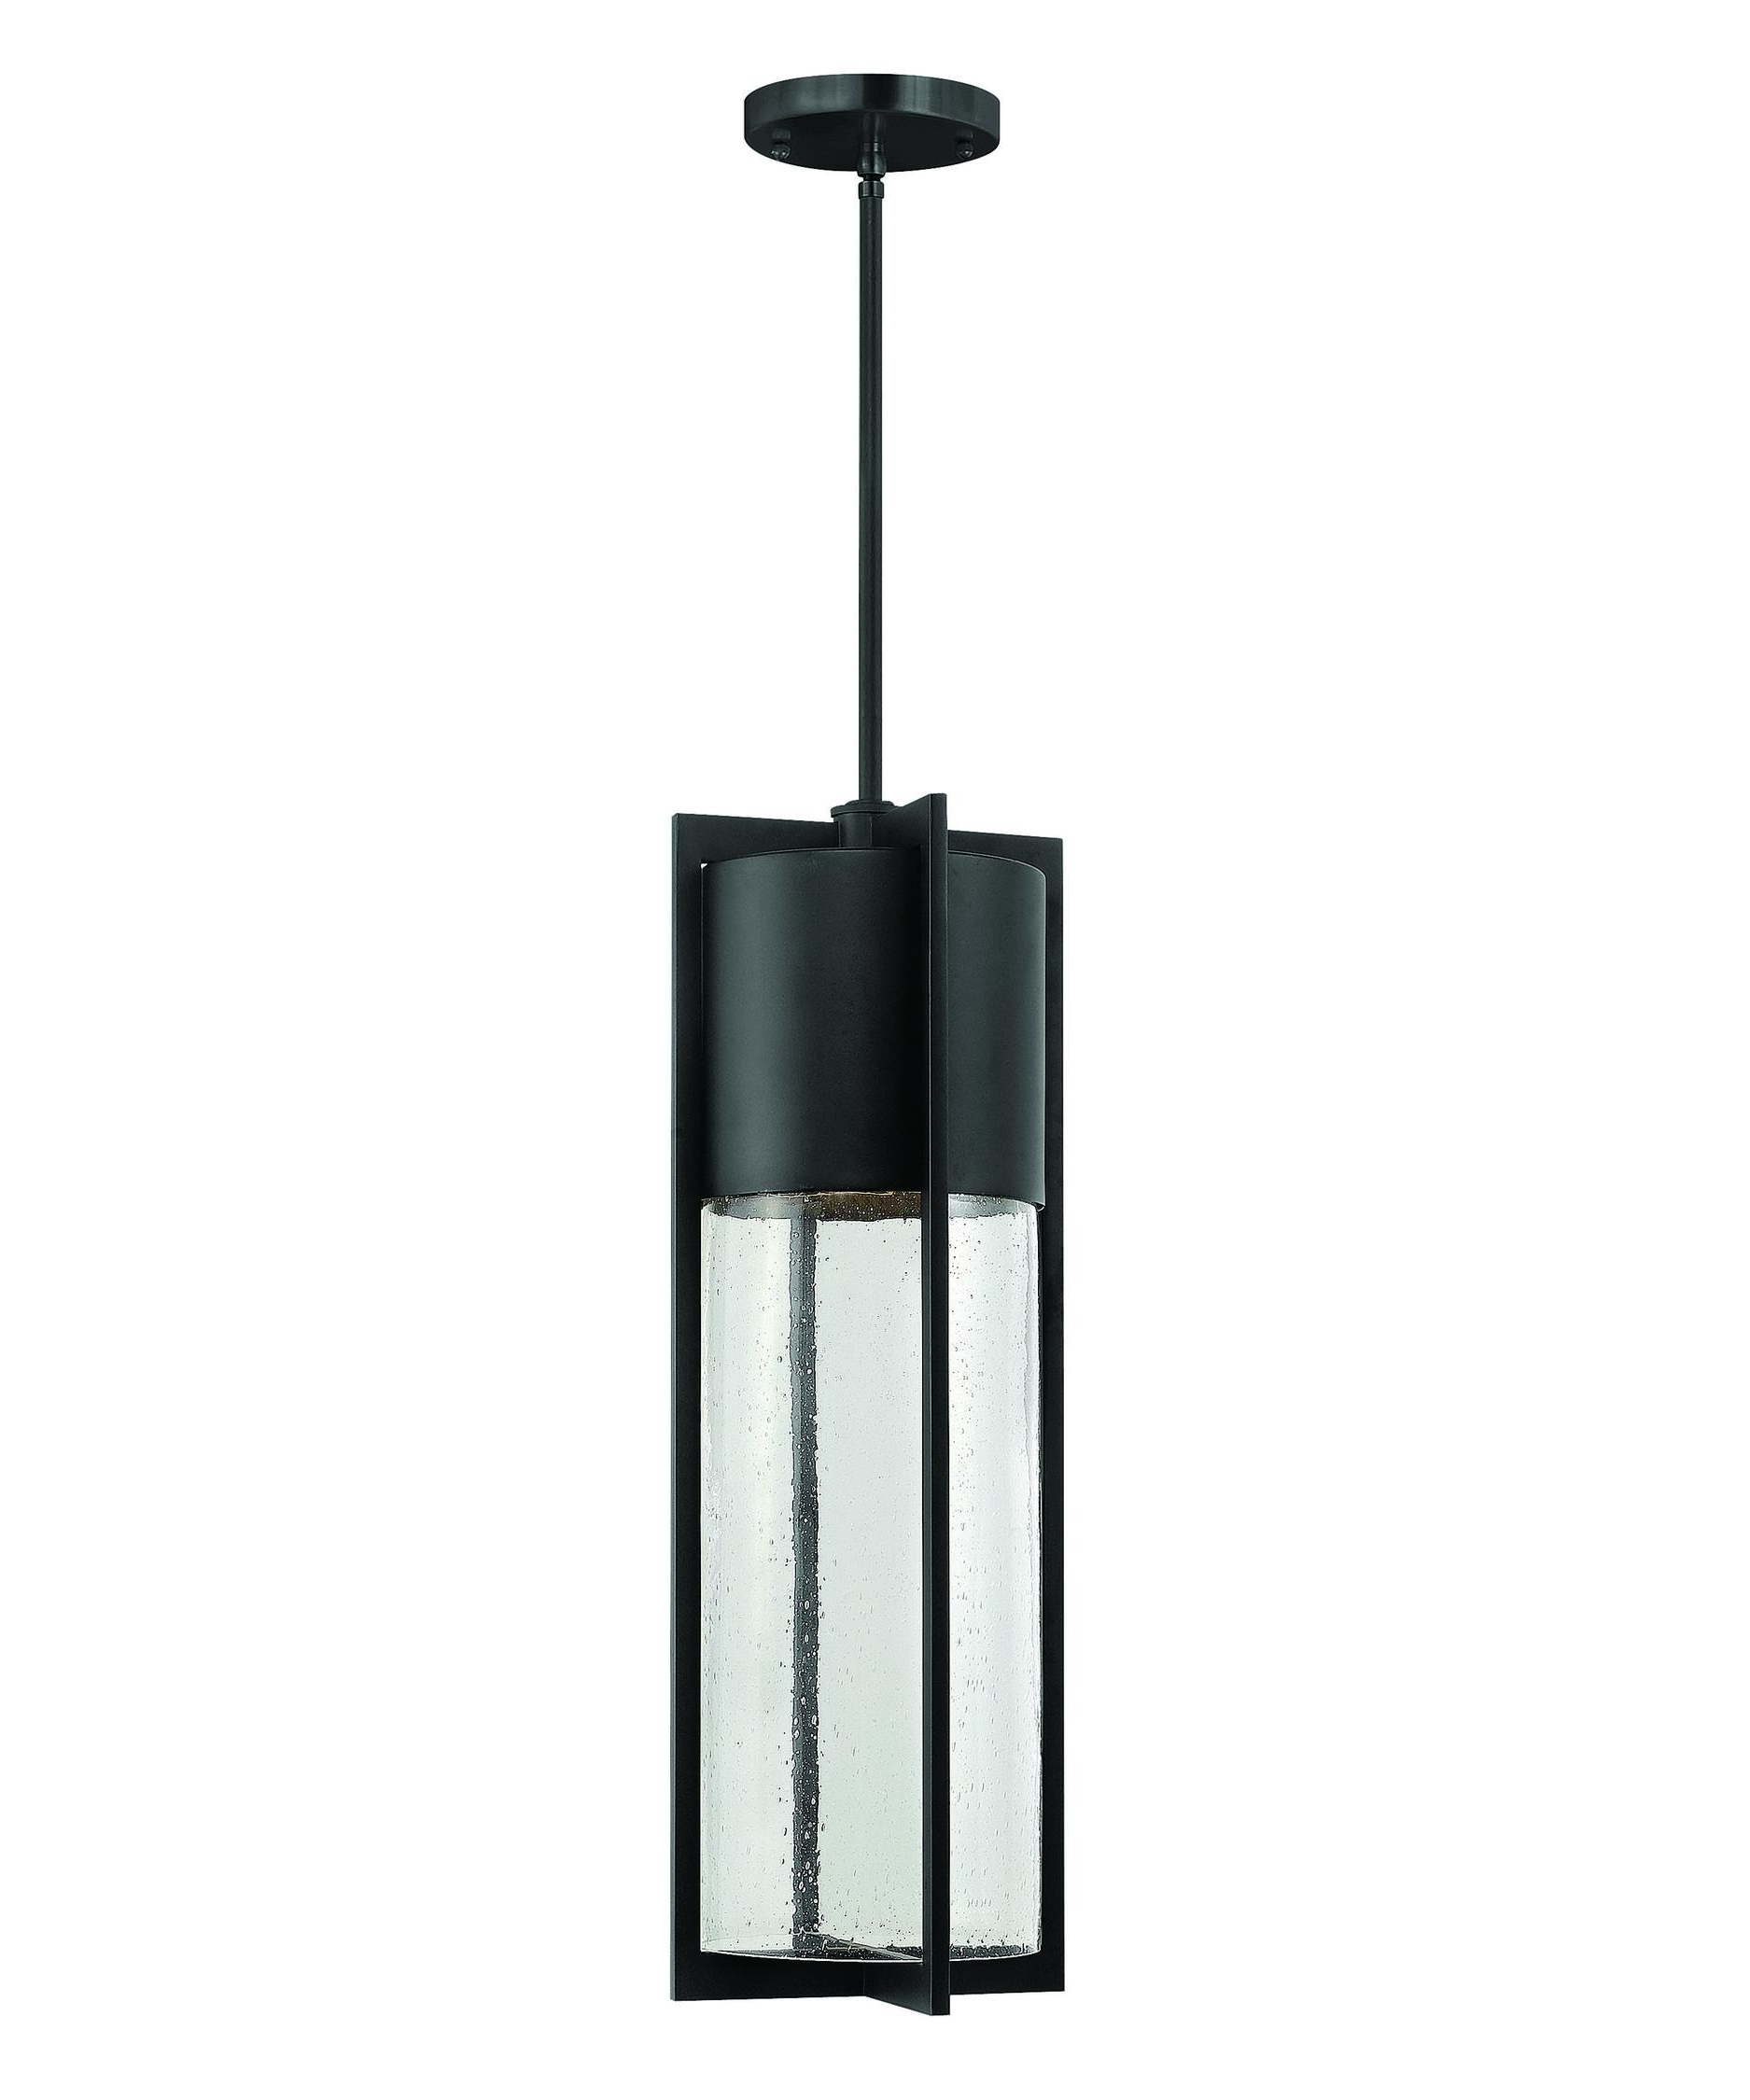 Hinkley Lighting 1328 Shelter 8 Inch Wide 1 Light Outdoor Hanging With Well Known Modern Outdoor Hinkley Lighting (View 5 of 20)